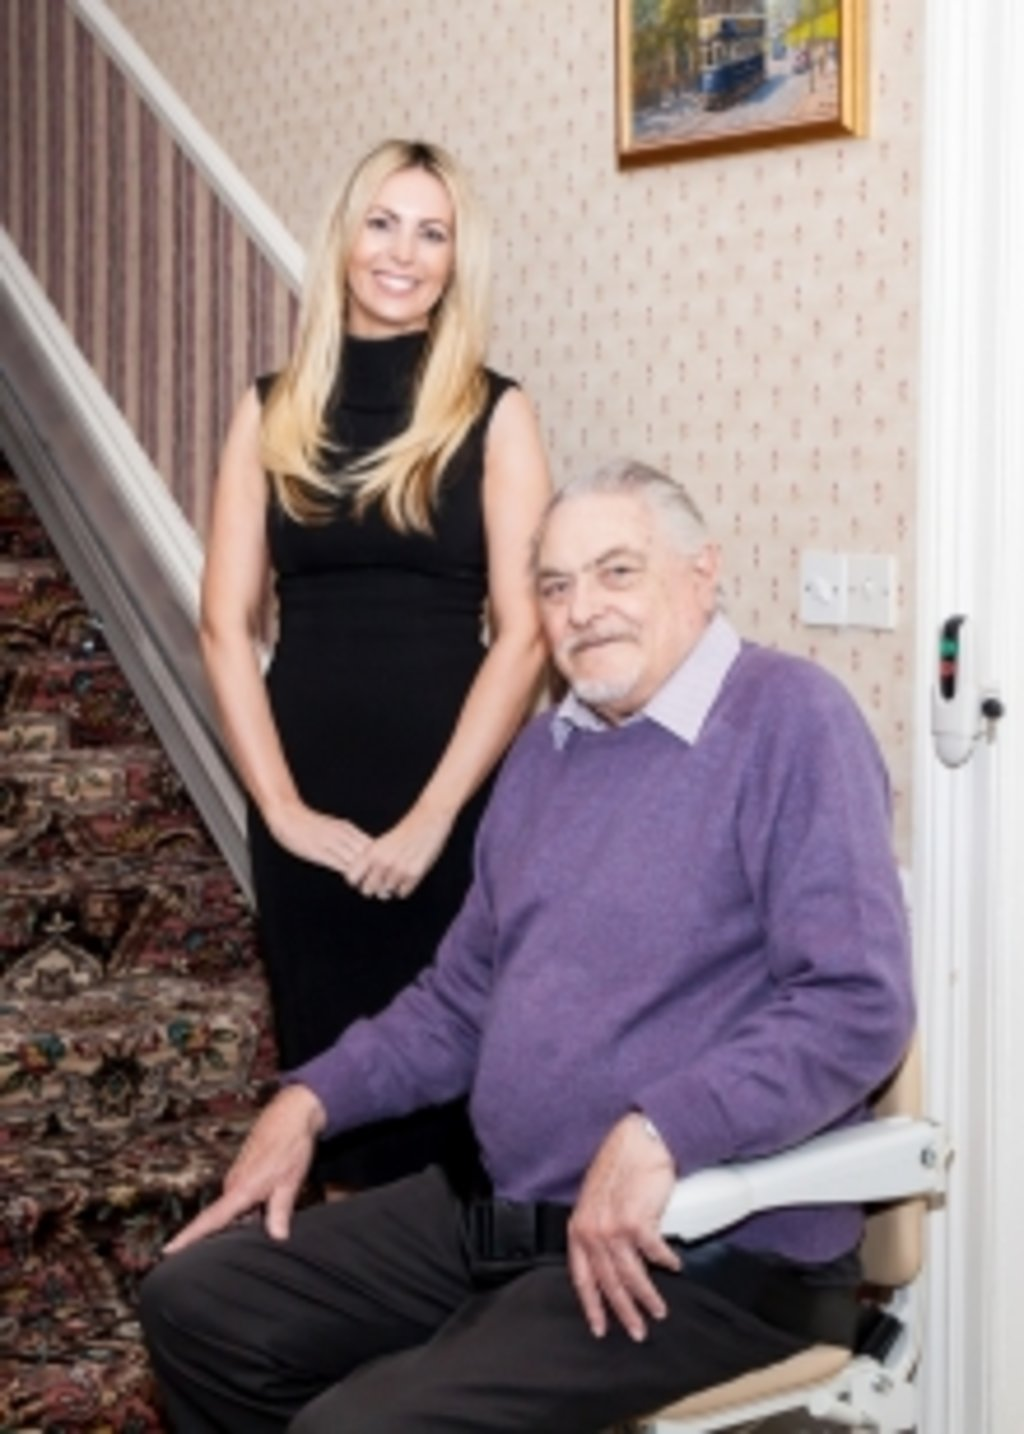 20,000th customer milestone for Companion Stairlifts